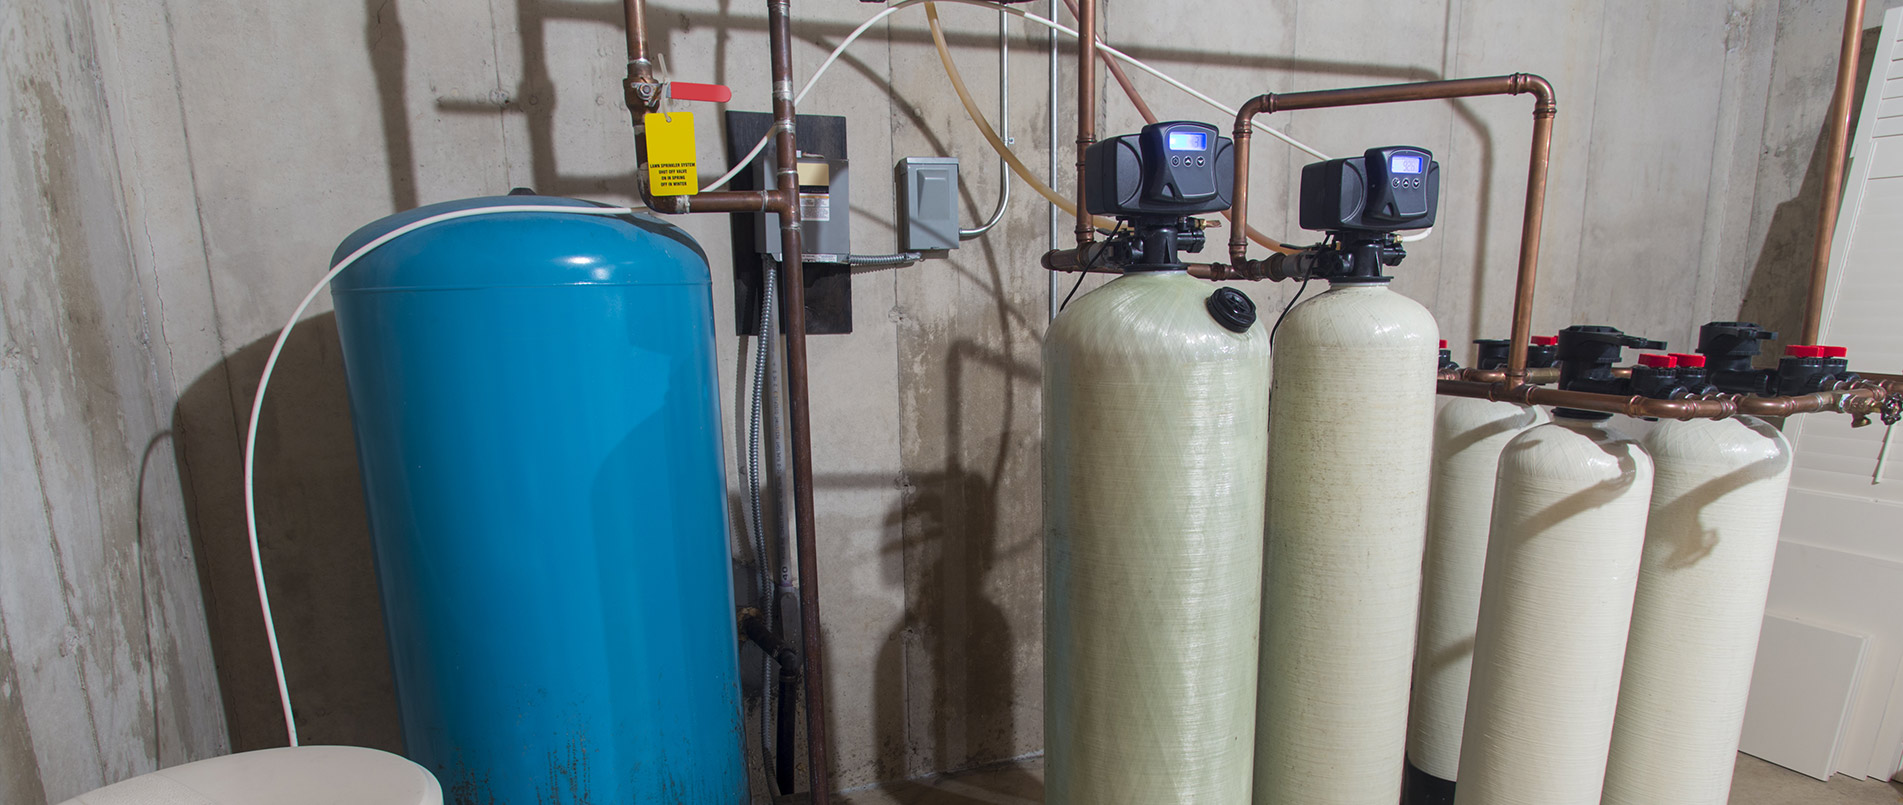 Everpure Residential Water Filter Systems